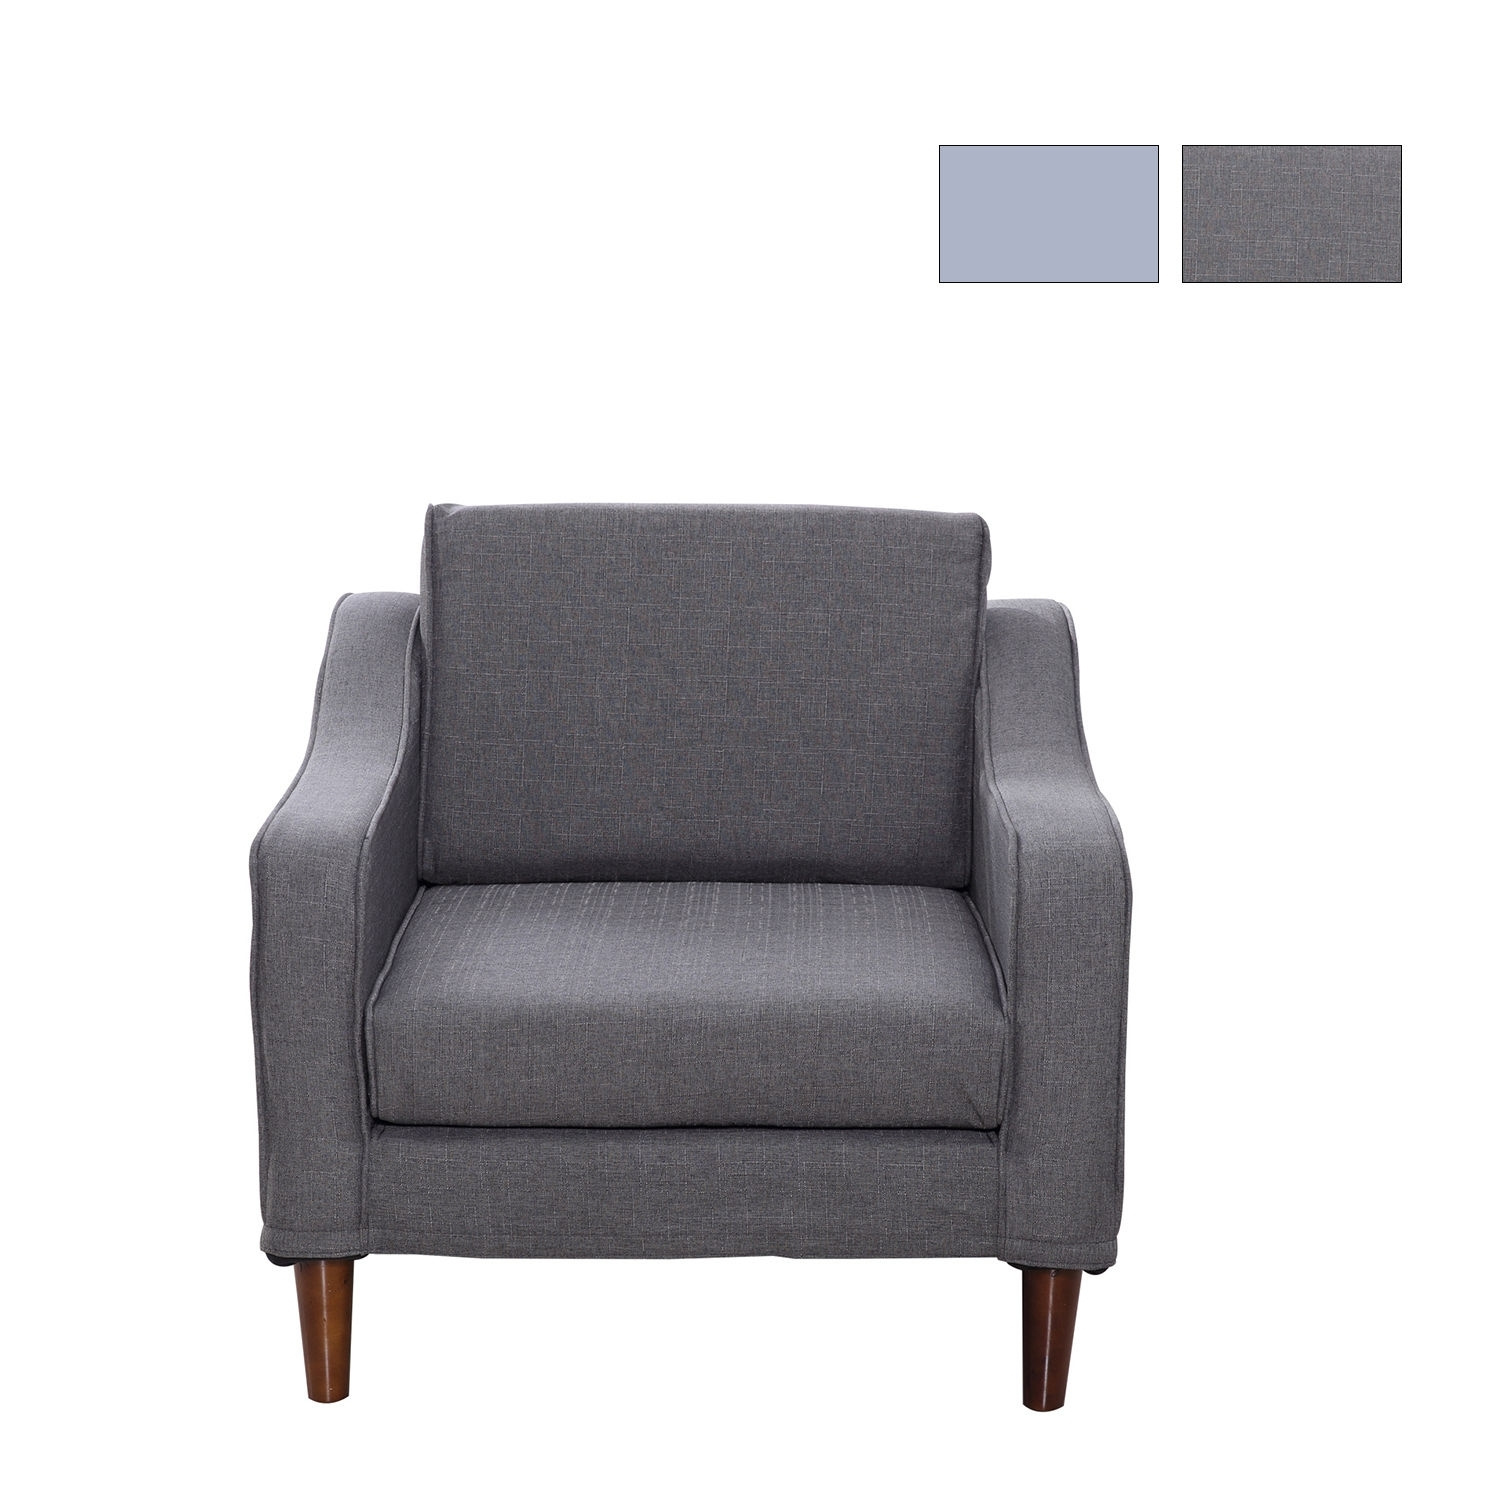 Sofa Arm Chair Single Seat Wood Chaise Linen Couch Cover Lounge Inside Single Sofas (View 8 of 10)